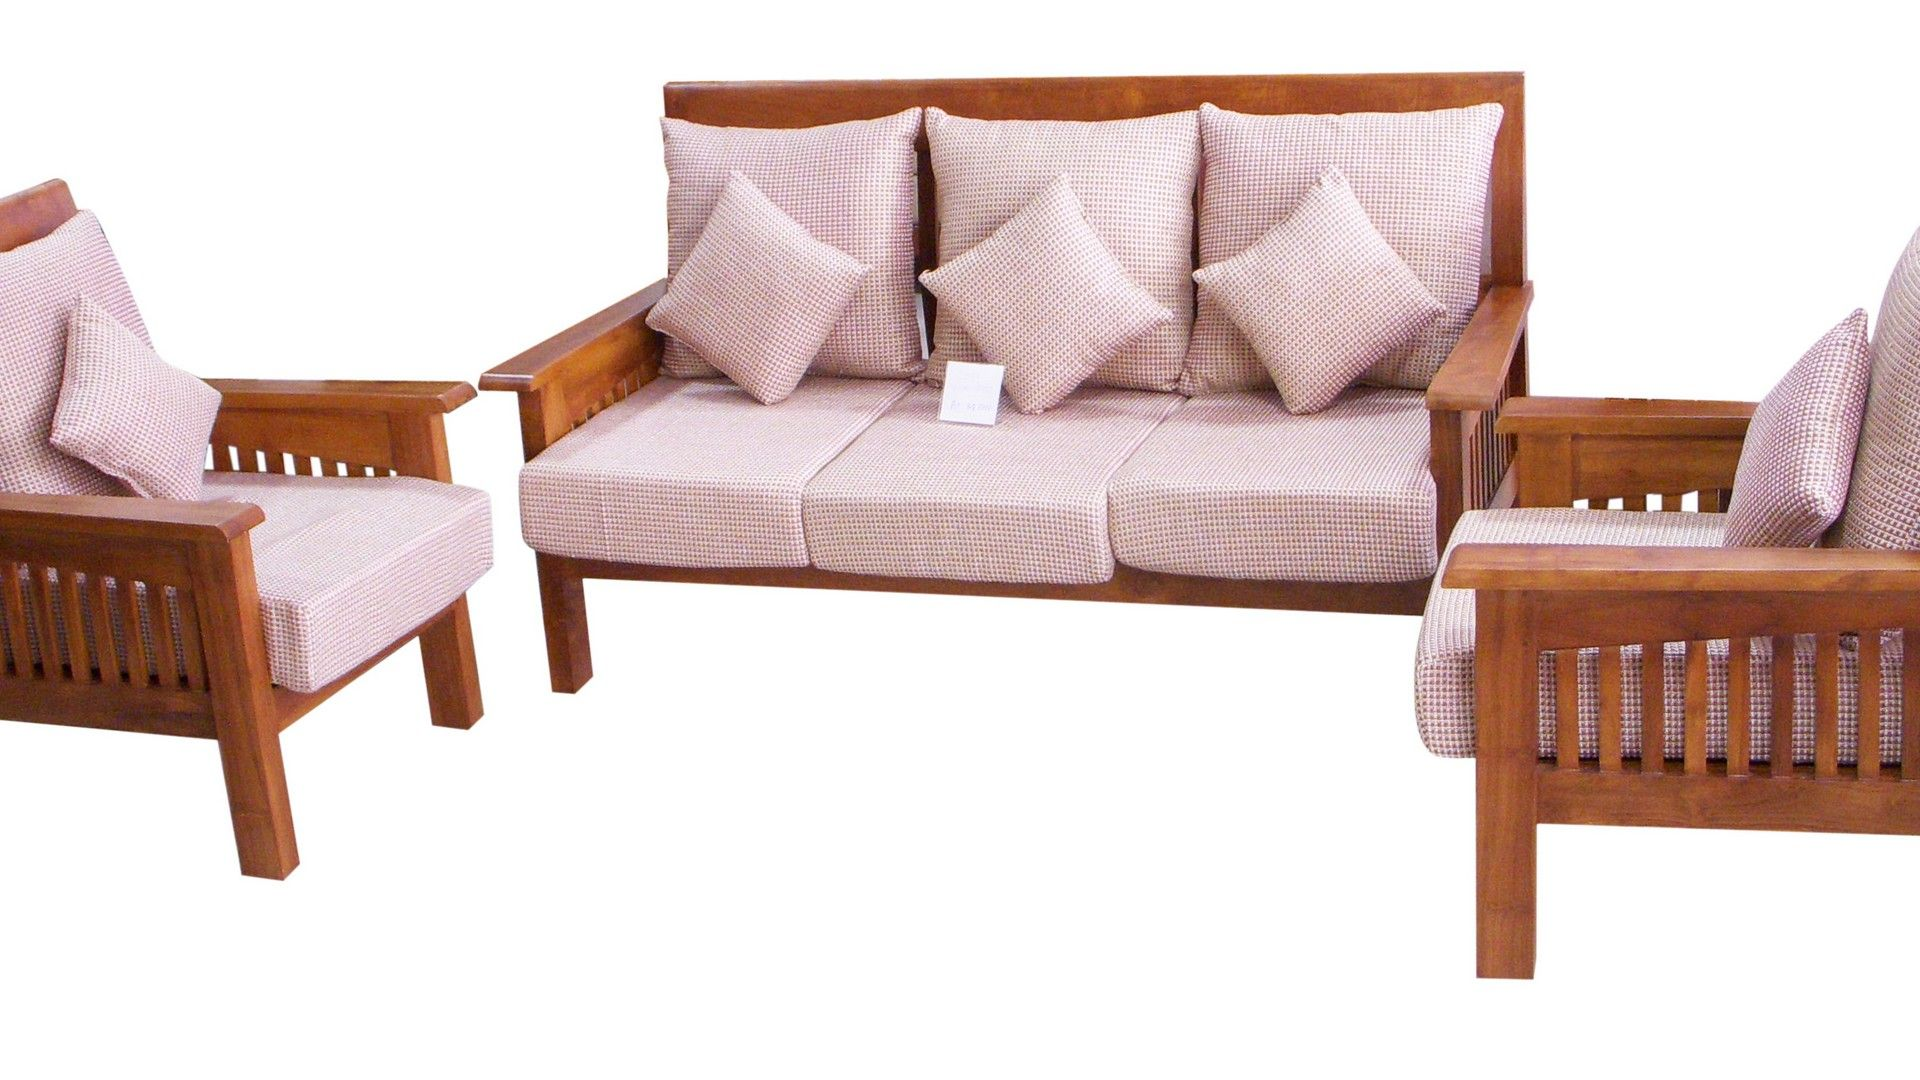 Cushion Sofa Set Round Parlor Charming Wooden With White Modern Seats Exdice